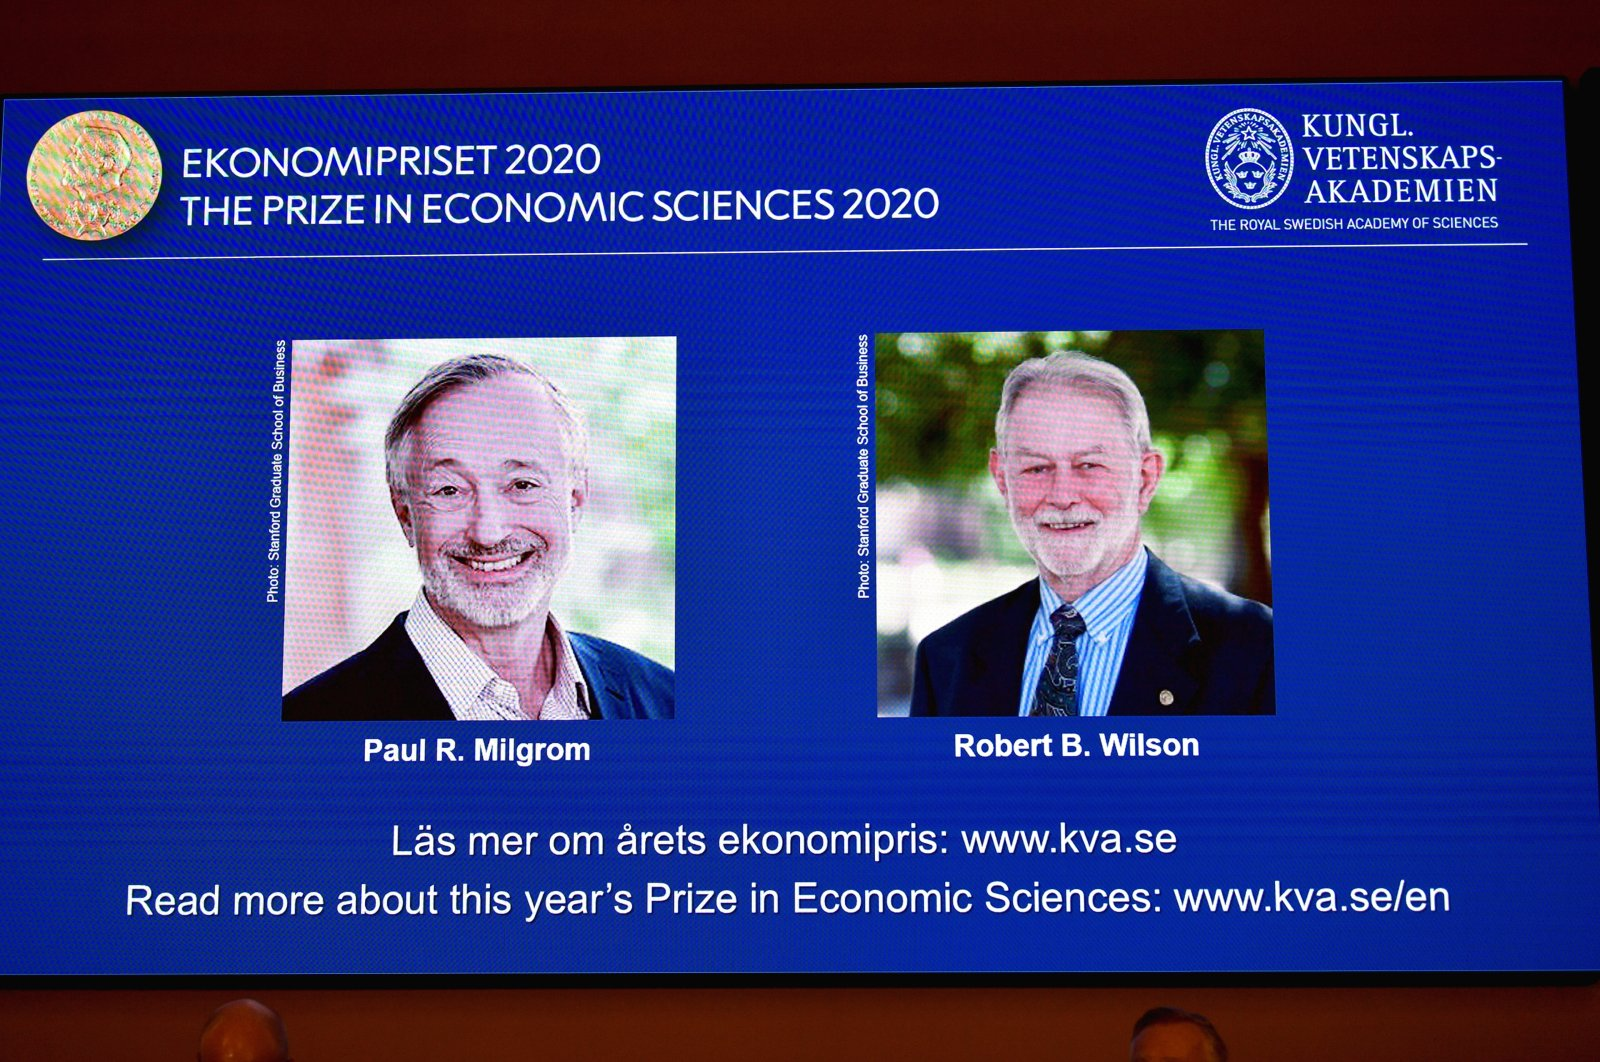 Pictures of the winners of the 2020 Nobel Prize in Economics, Paul R. Milgrom and Robert B. Wilson, are displayed on a screen at a news conference in Stockholm, Sweden, Oct. 12, 2020. (TT News Agency via Reuters)